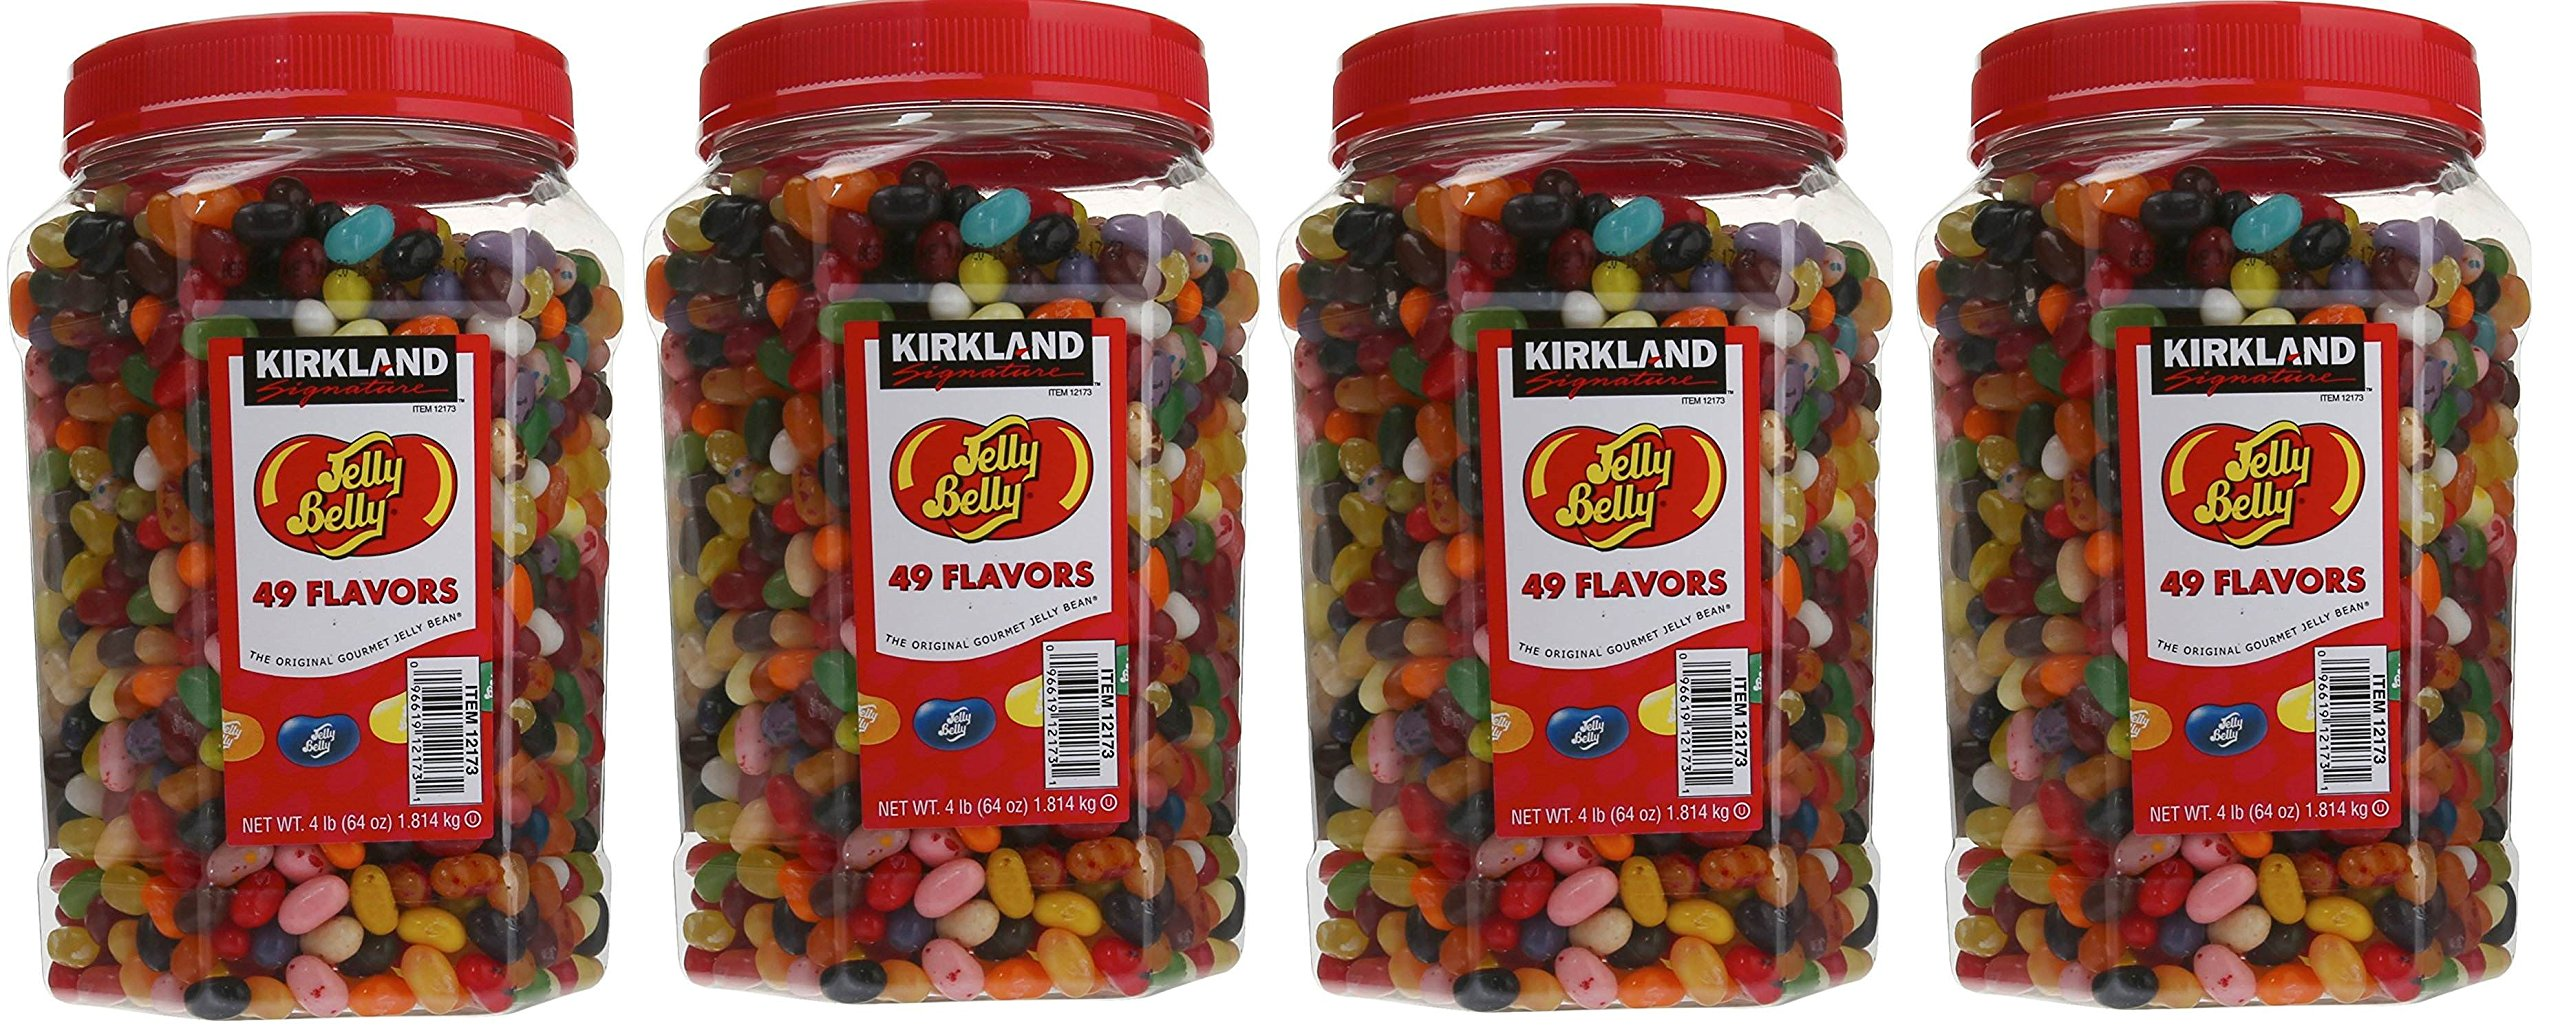 Kirkland Signature Jelly Belly Jelly Beans, 16 Pounds by Kirkland Signature